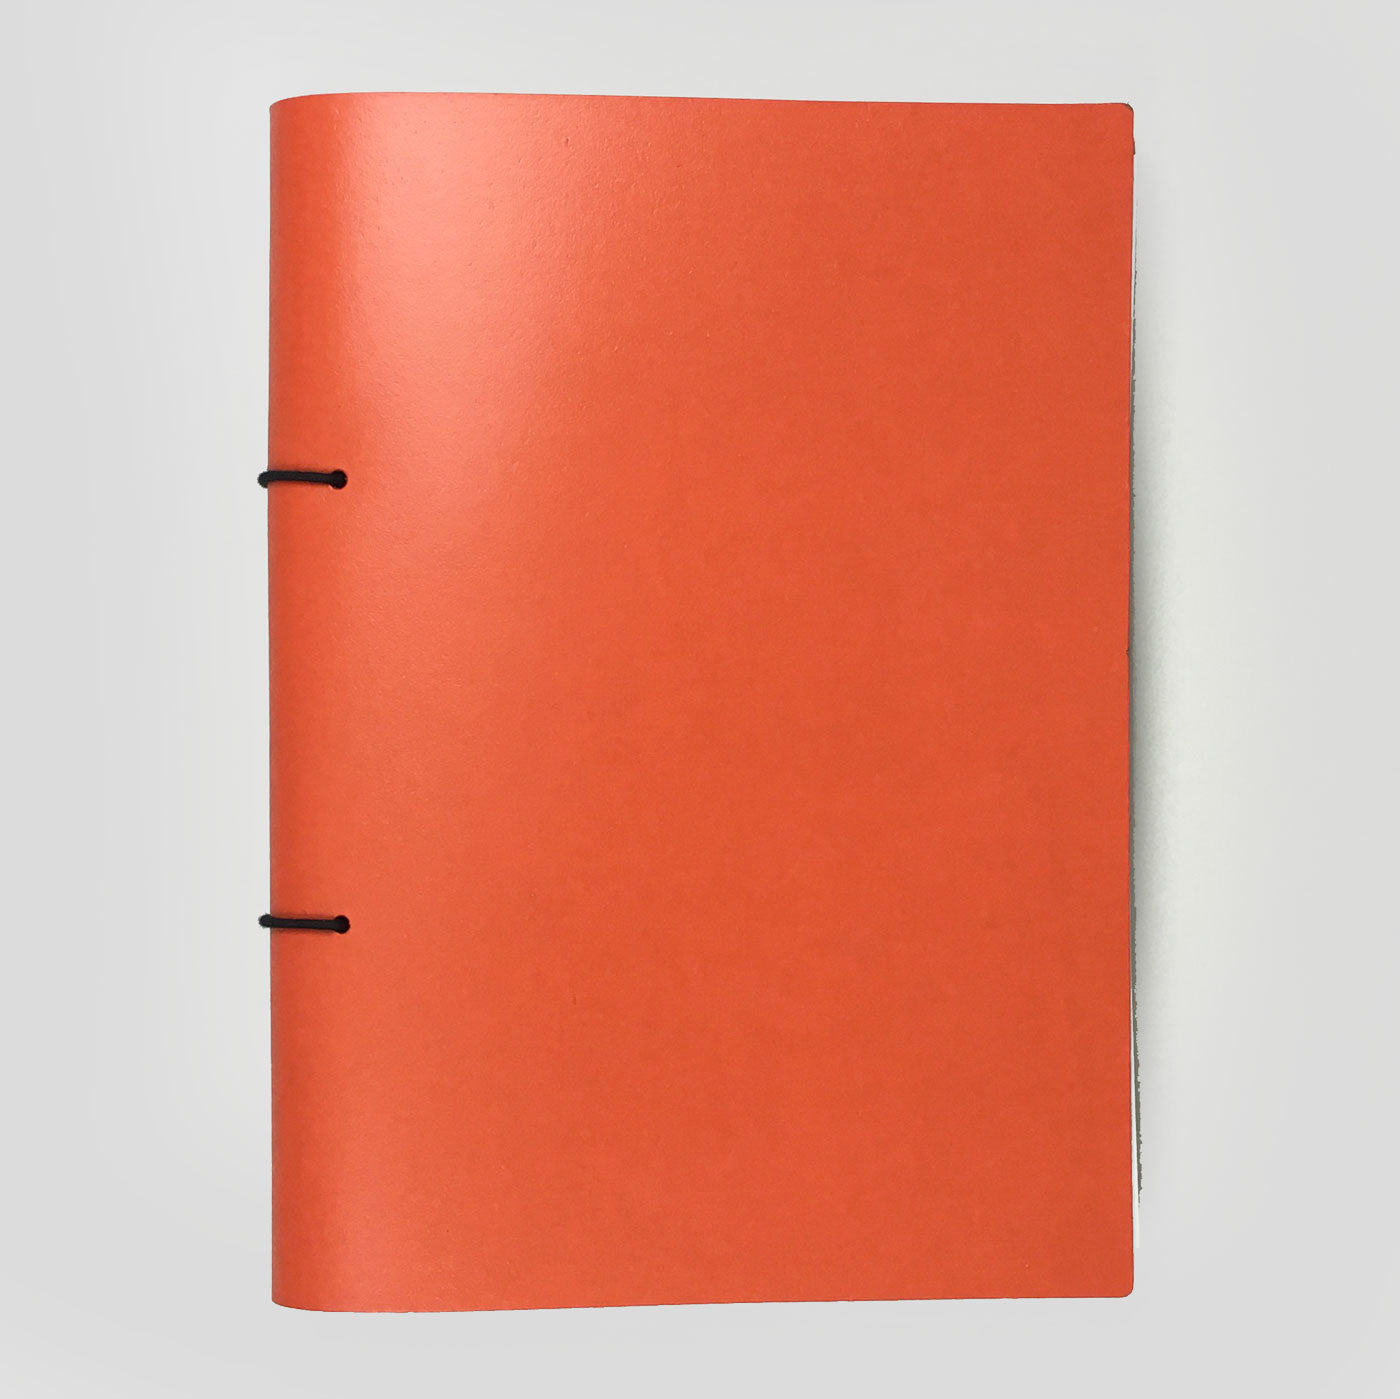 Artbox Notebook Orange - Medium